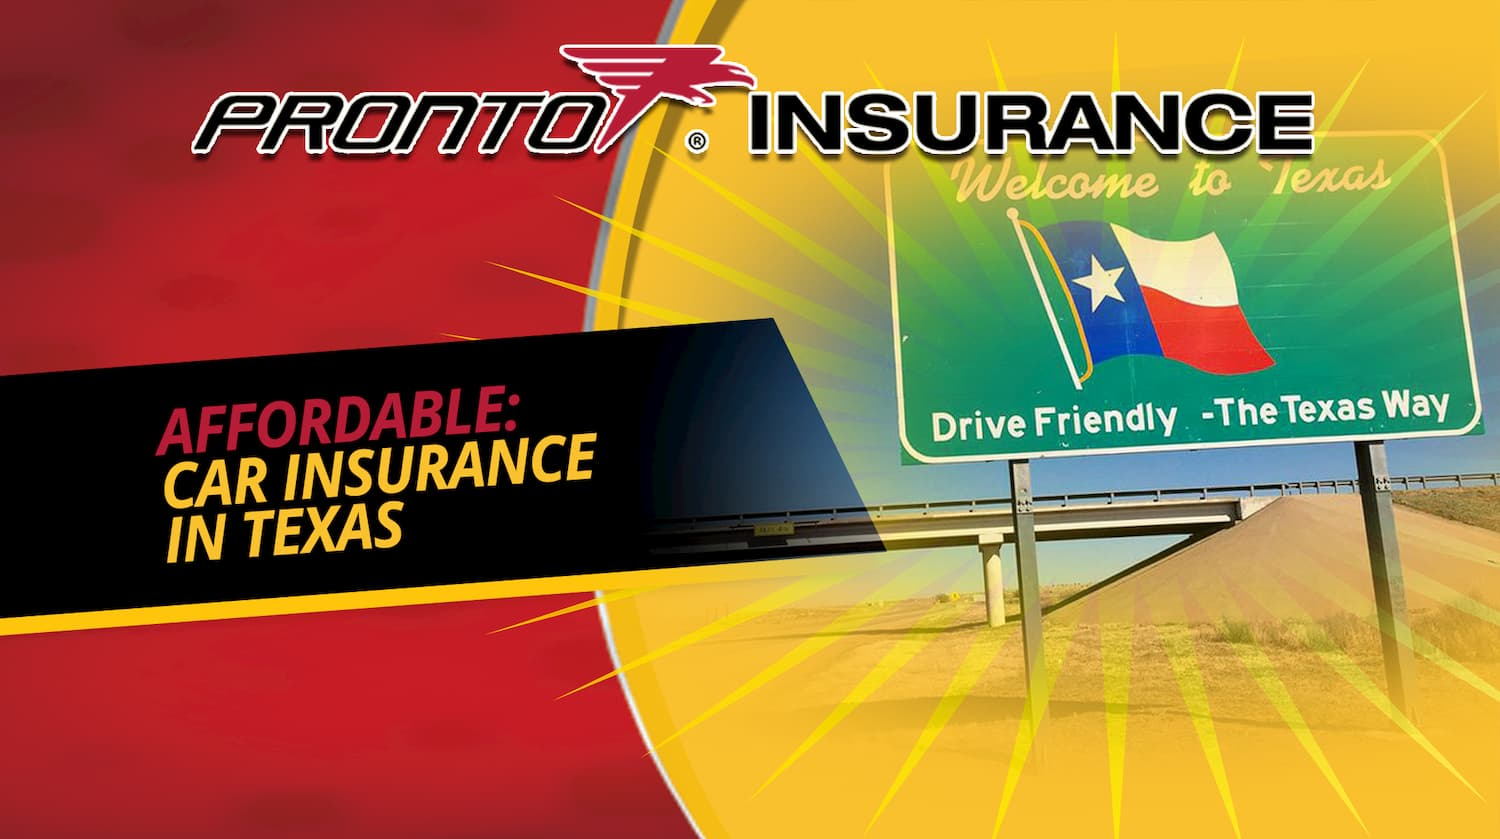 Affordable Car Insurance in Texas